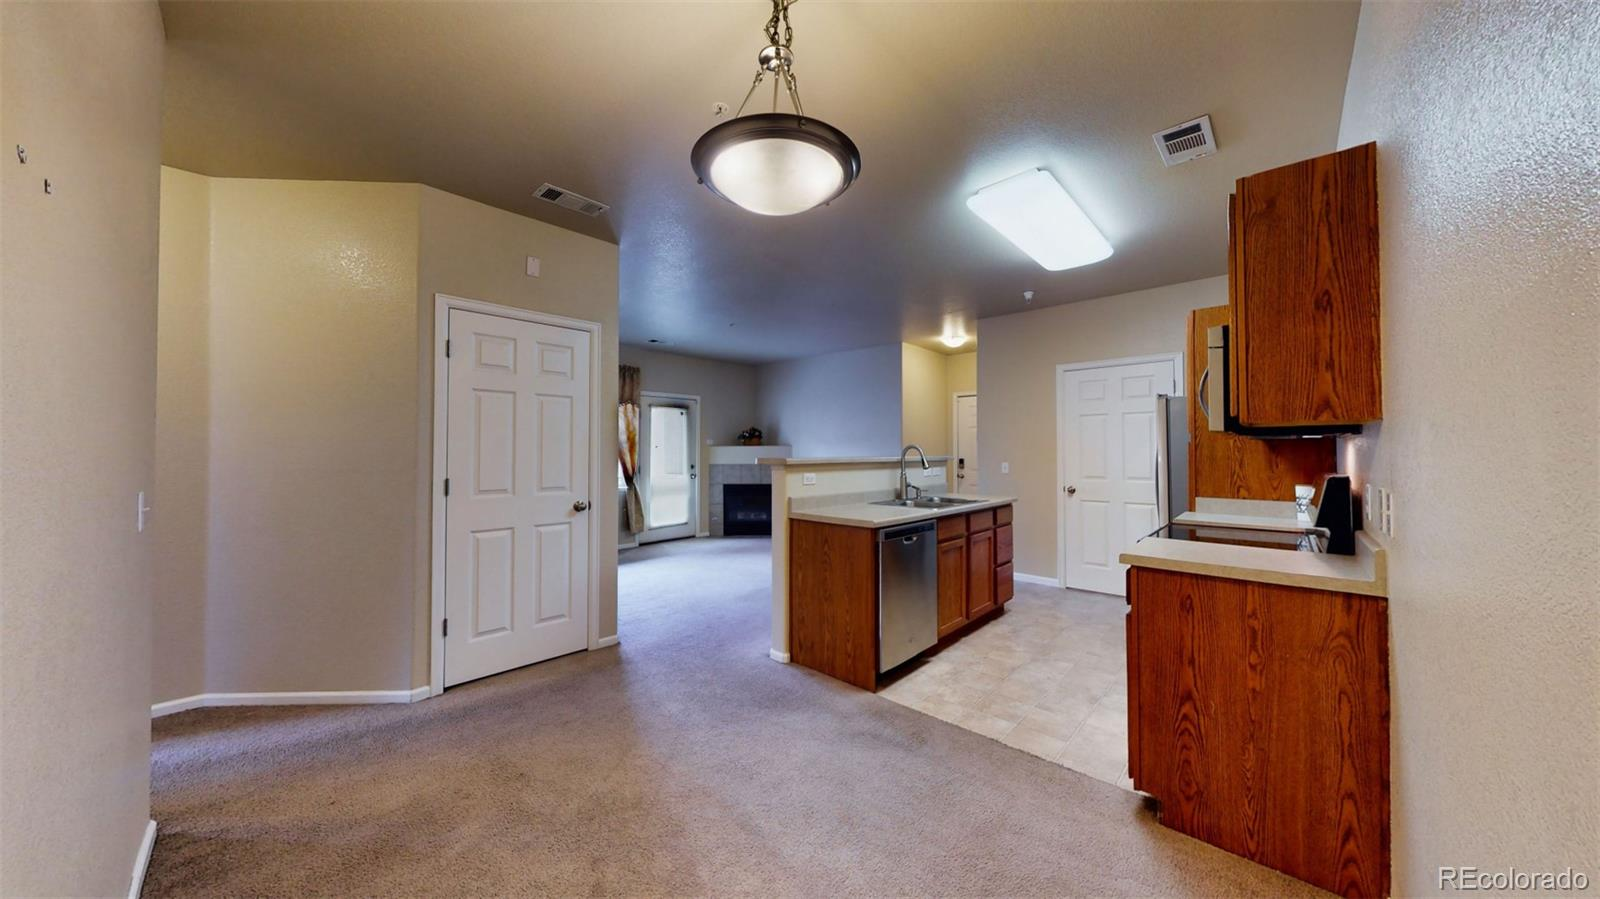 MLS# 3562922 - 6 - 8123 W 51st Place #202, Arvada, CO 80002